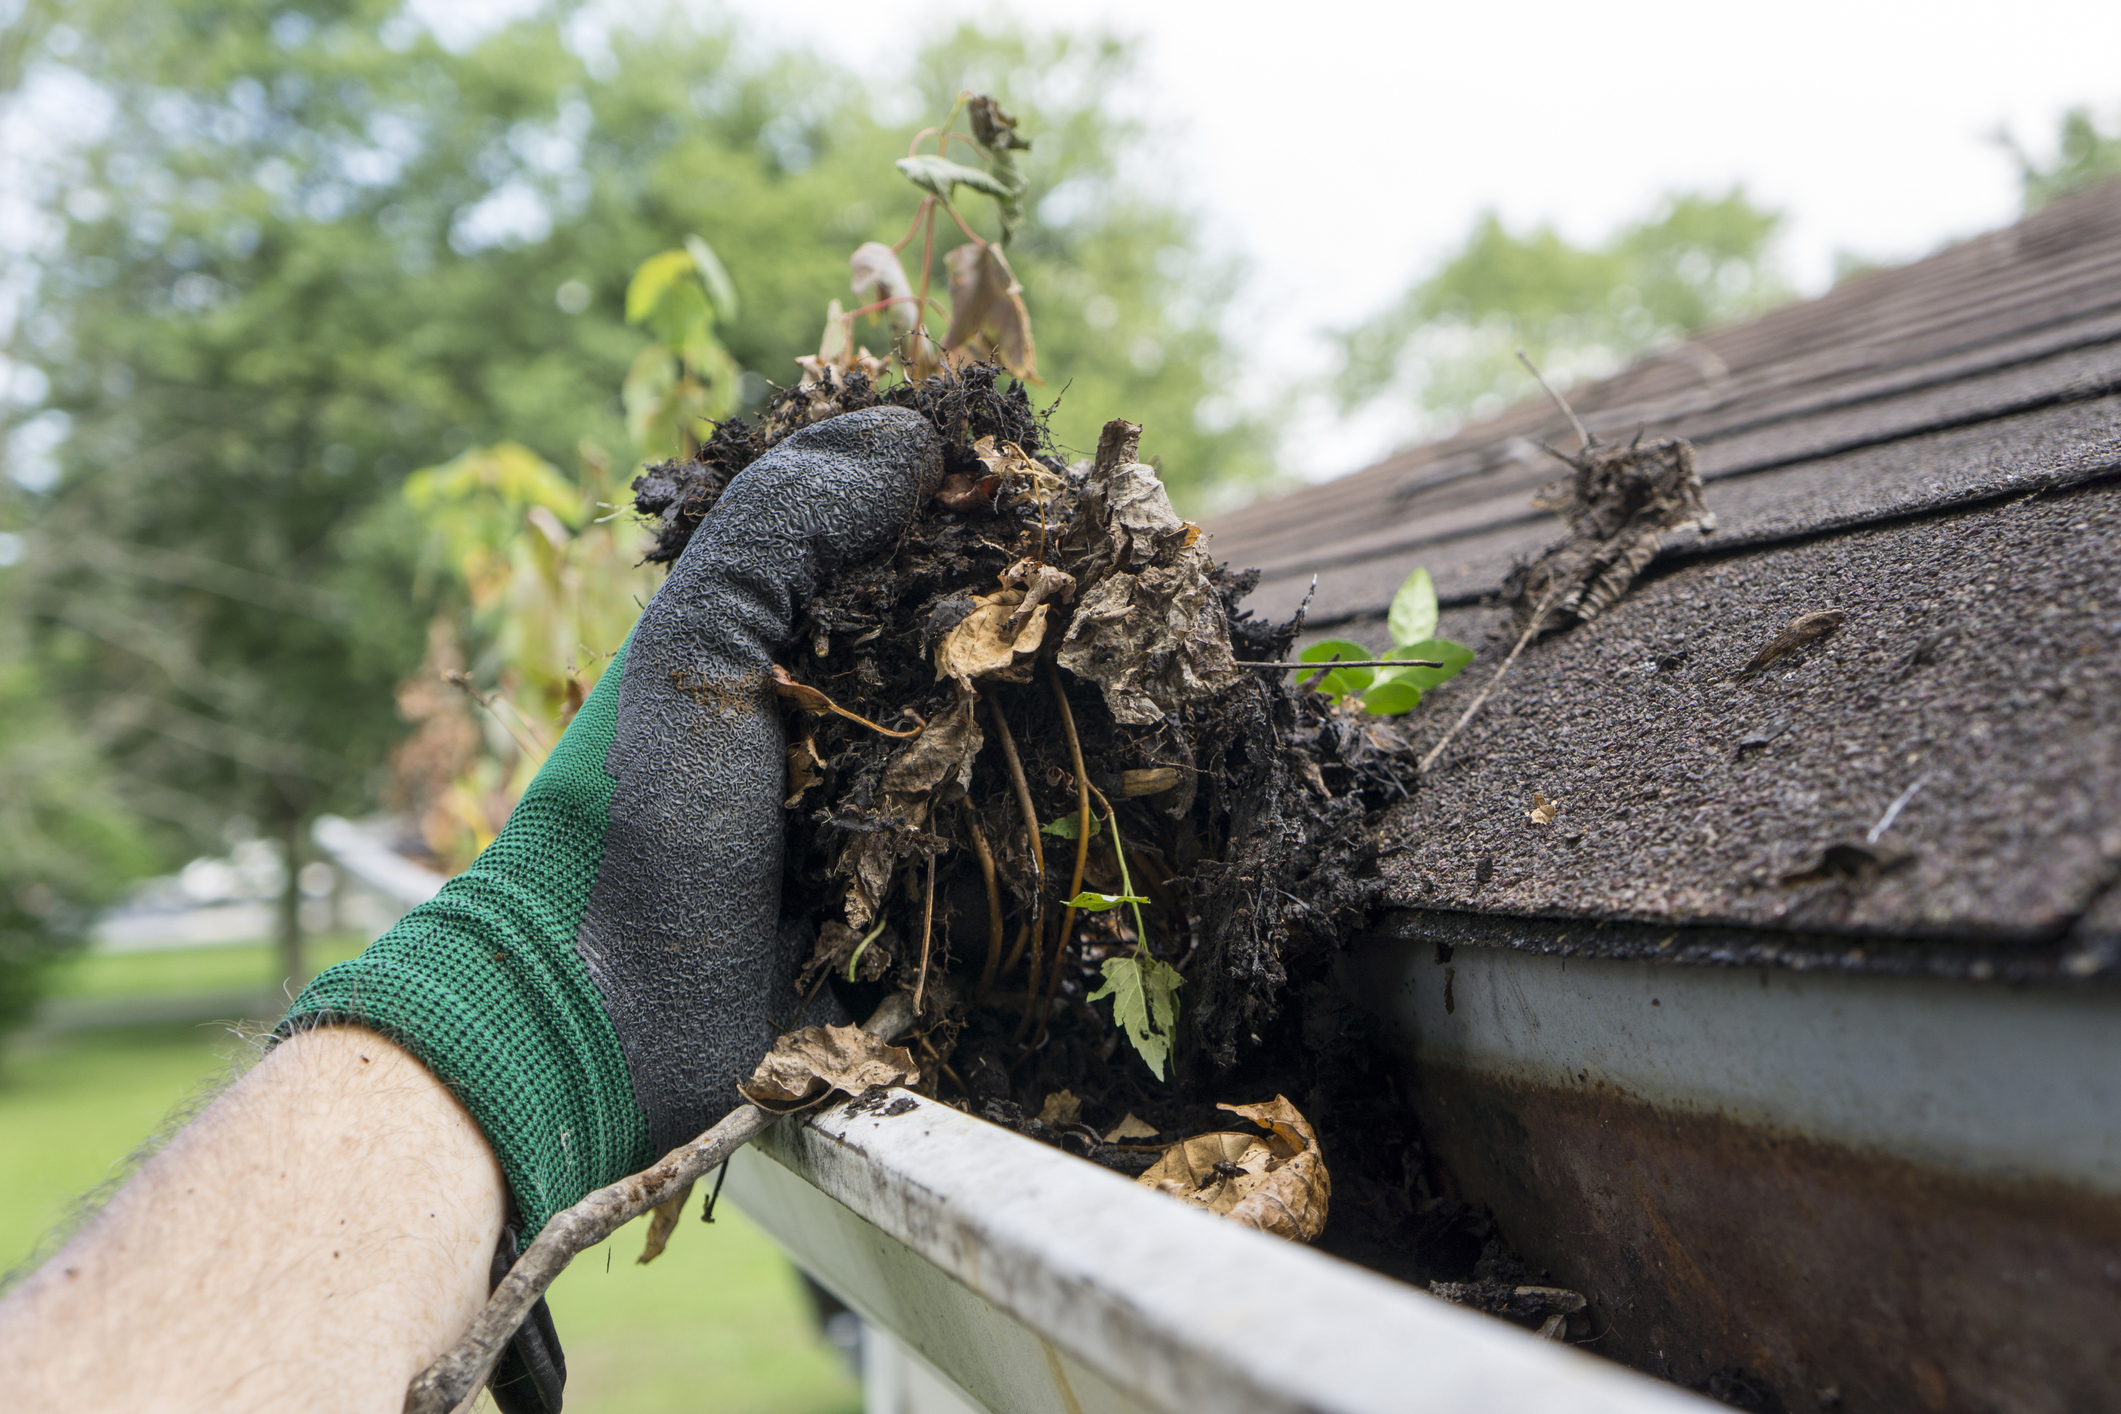 Gutter Cleaning - We also offer seasonal gutter cleaning services